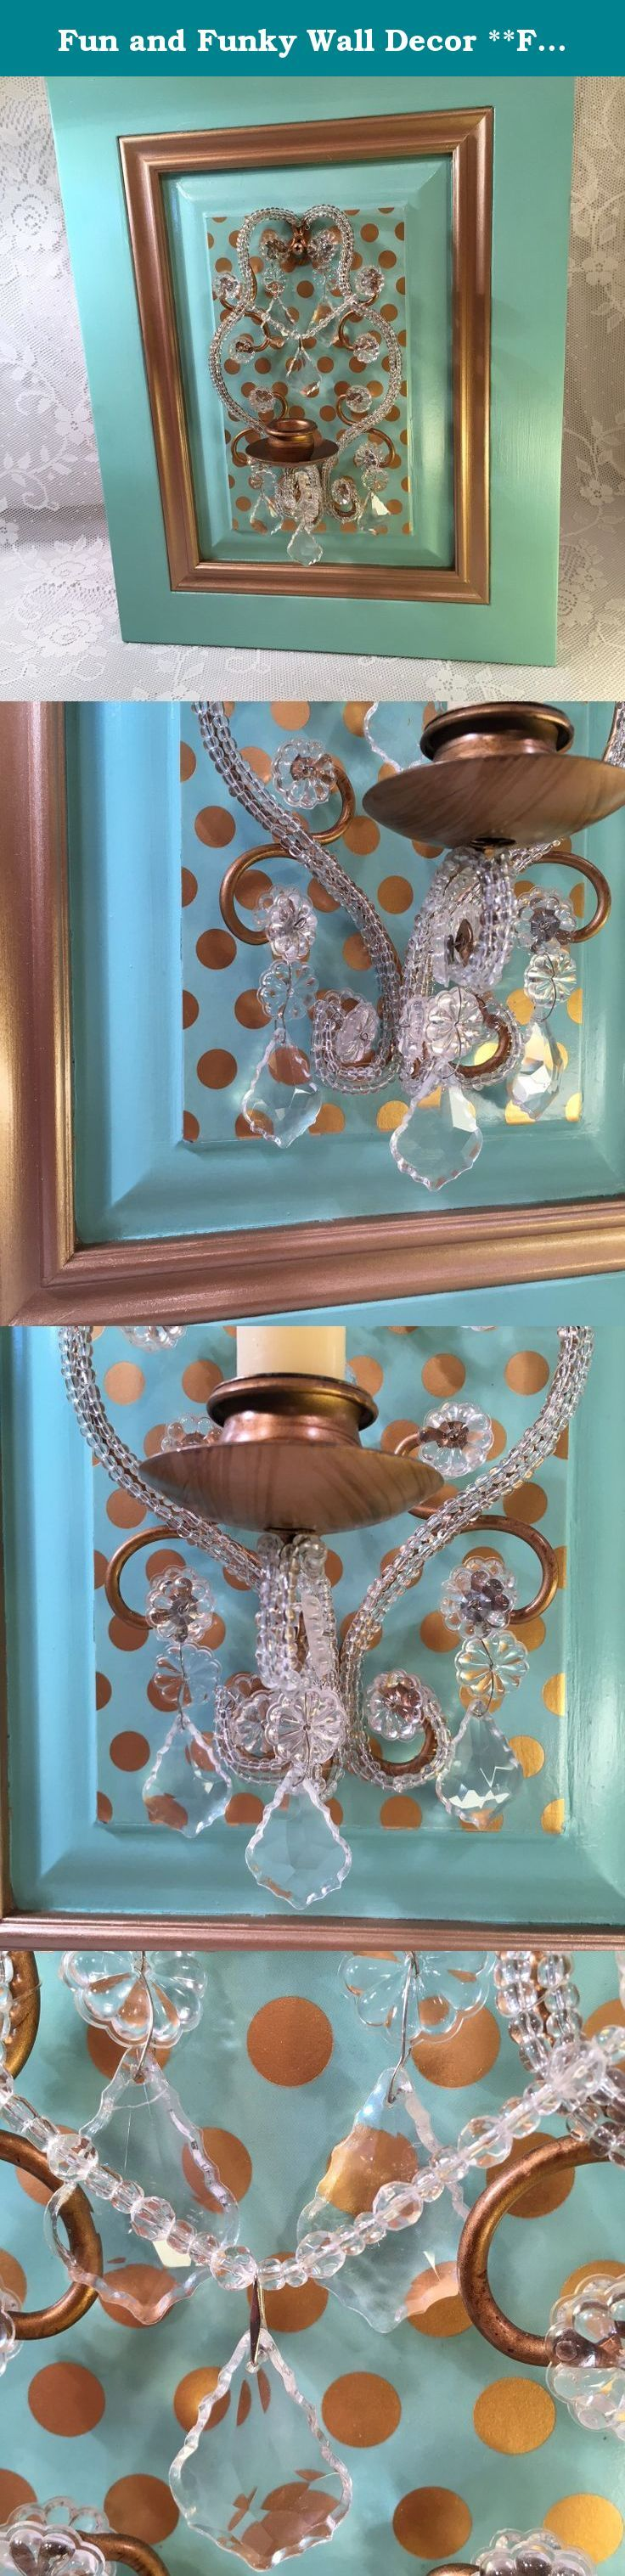 "Fun and Funky Wall Decor **FREE Shipping**. Here you have it! A funky and fun wall hanging for your unique home. The old fashioned crystal candleholder with bronze accents is set off by the bold turquoise background. Polka dots bring the fun character to life. Maybe you have seen this syroco candleholder before at grandma's house - but this is something different and new. Take it home or give as a gift to your eclectic friend and it is sure to bring a smile :-) ~~ Measurements: 18""t x 14""w…"